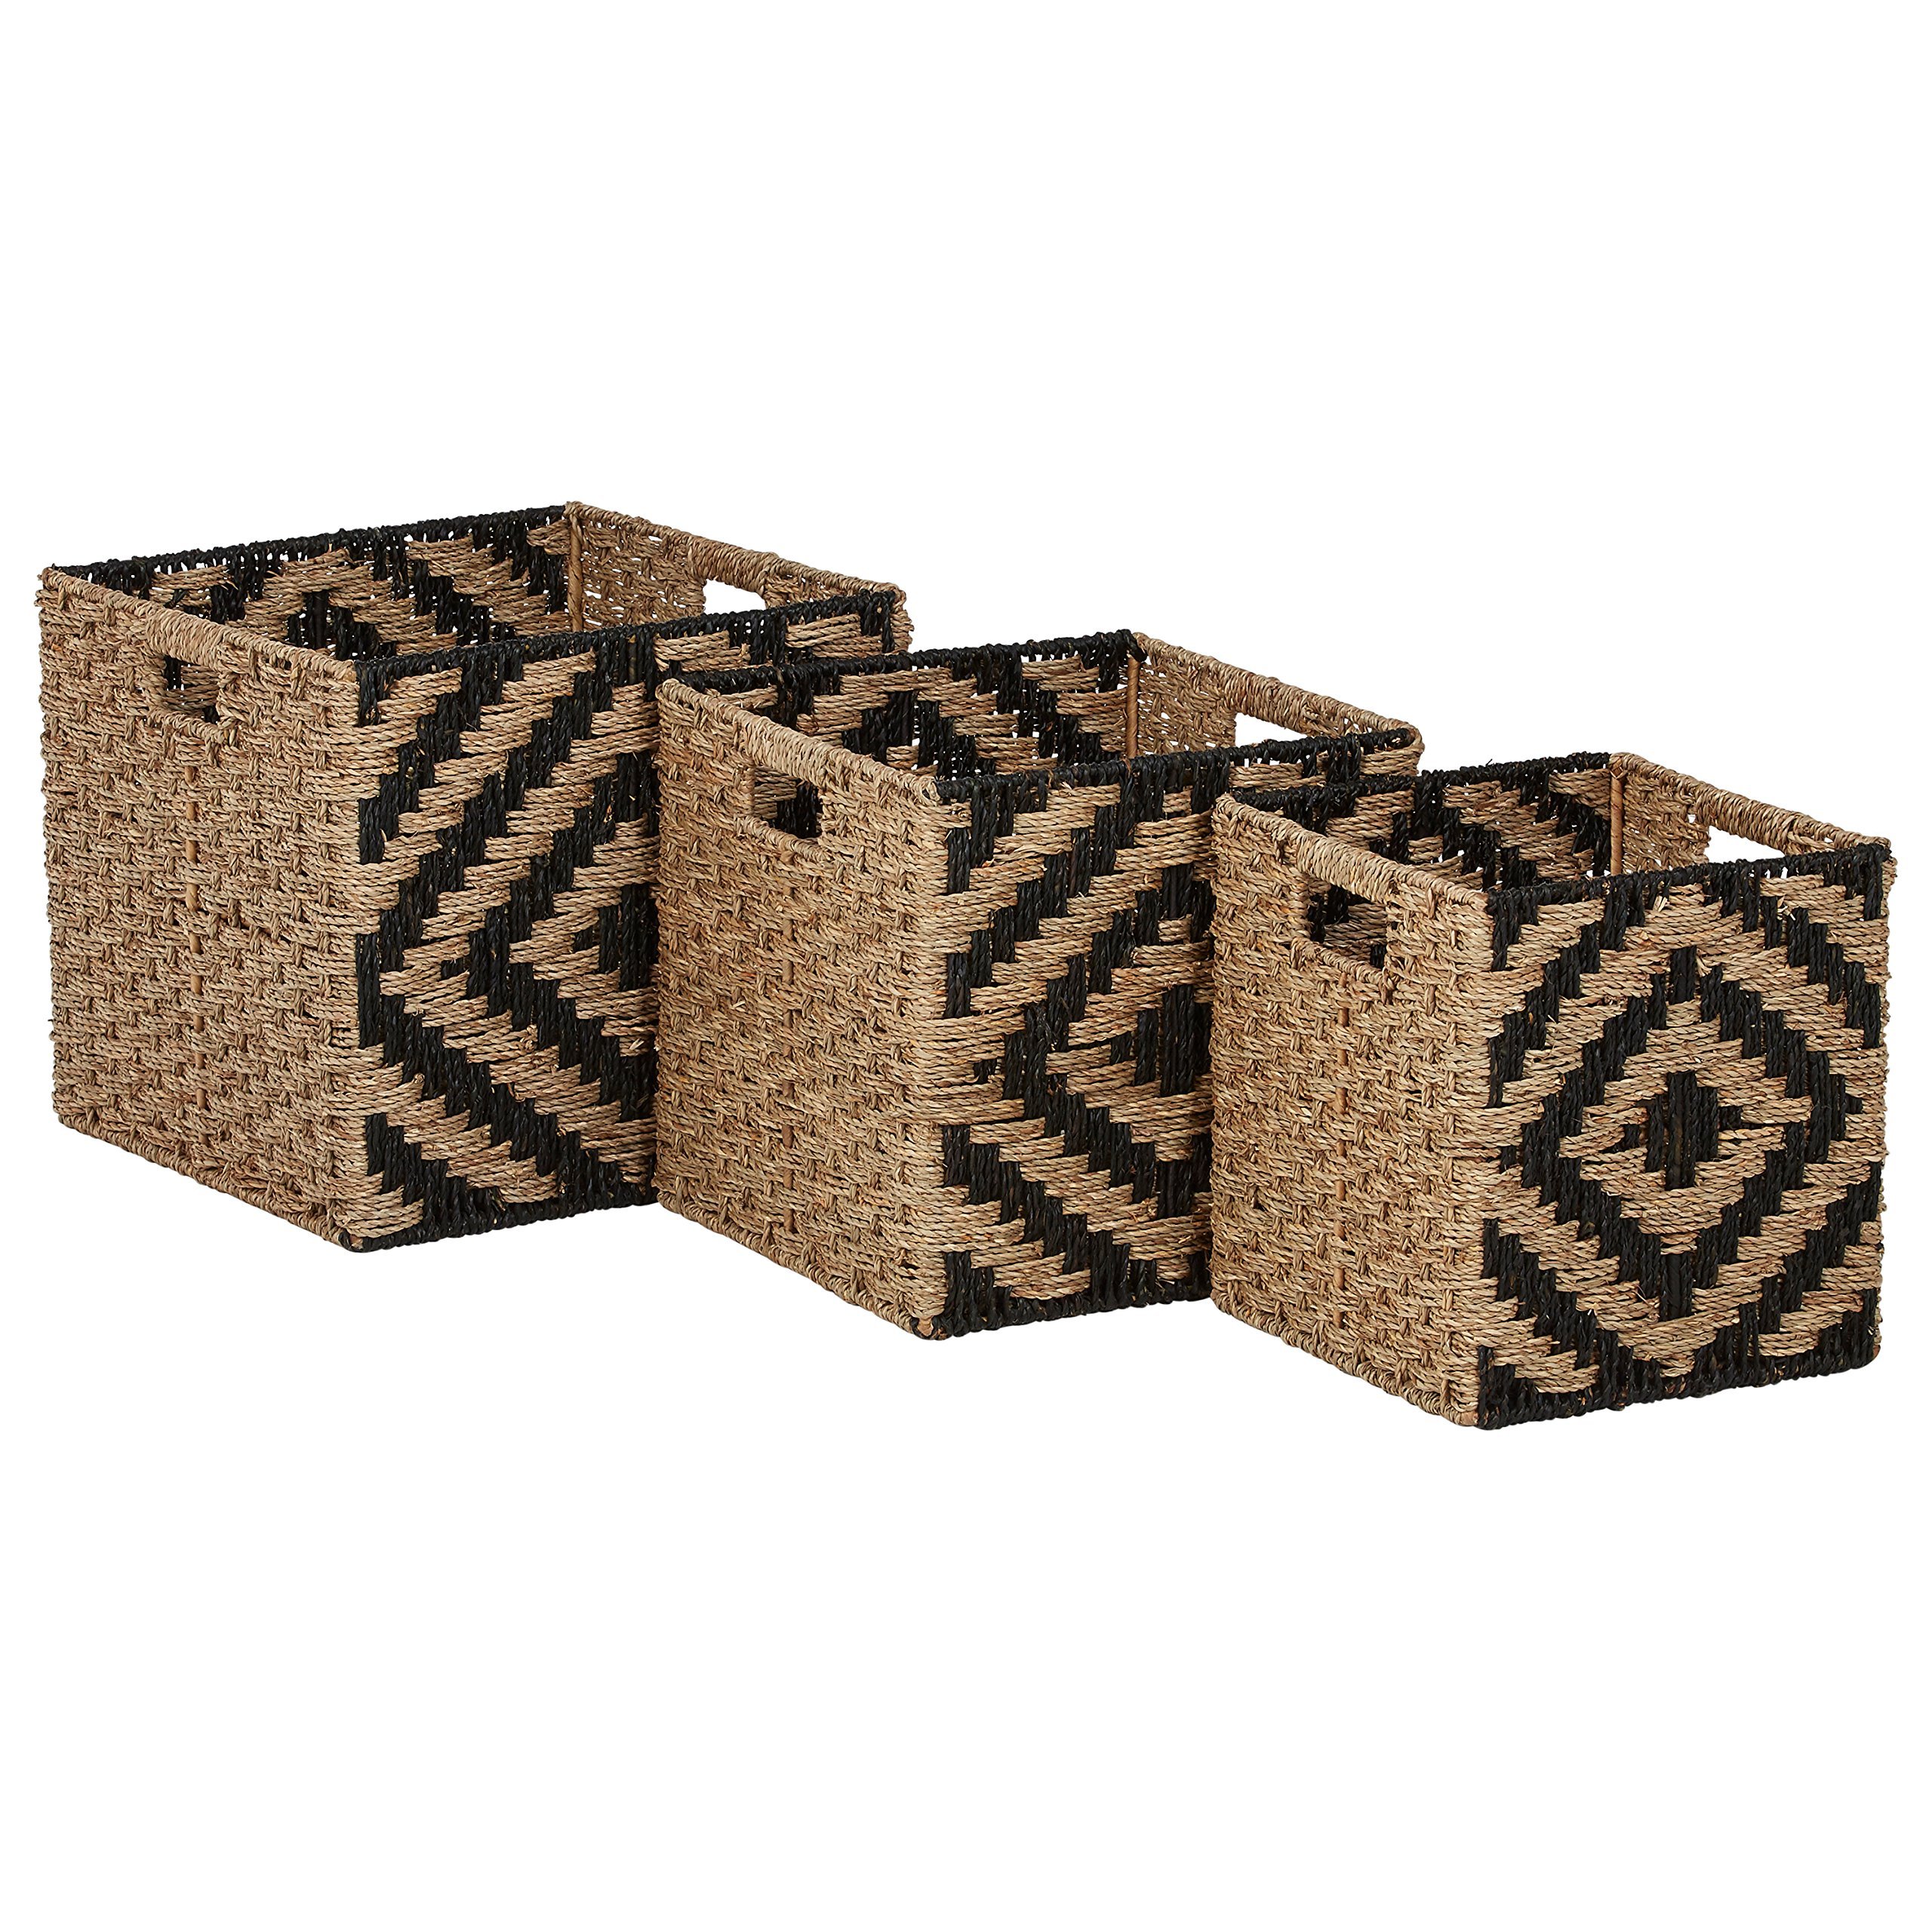 Amazon Brand – Rivet Modern Woven Seagrass Storage Organizer Basket Set - 3-Pack, Natural & Black